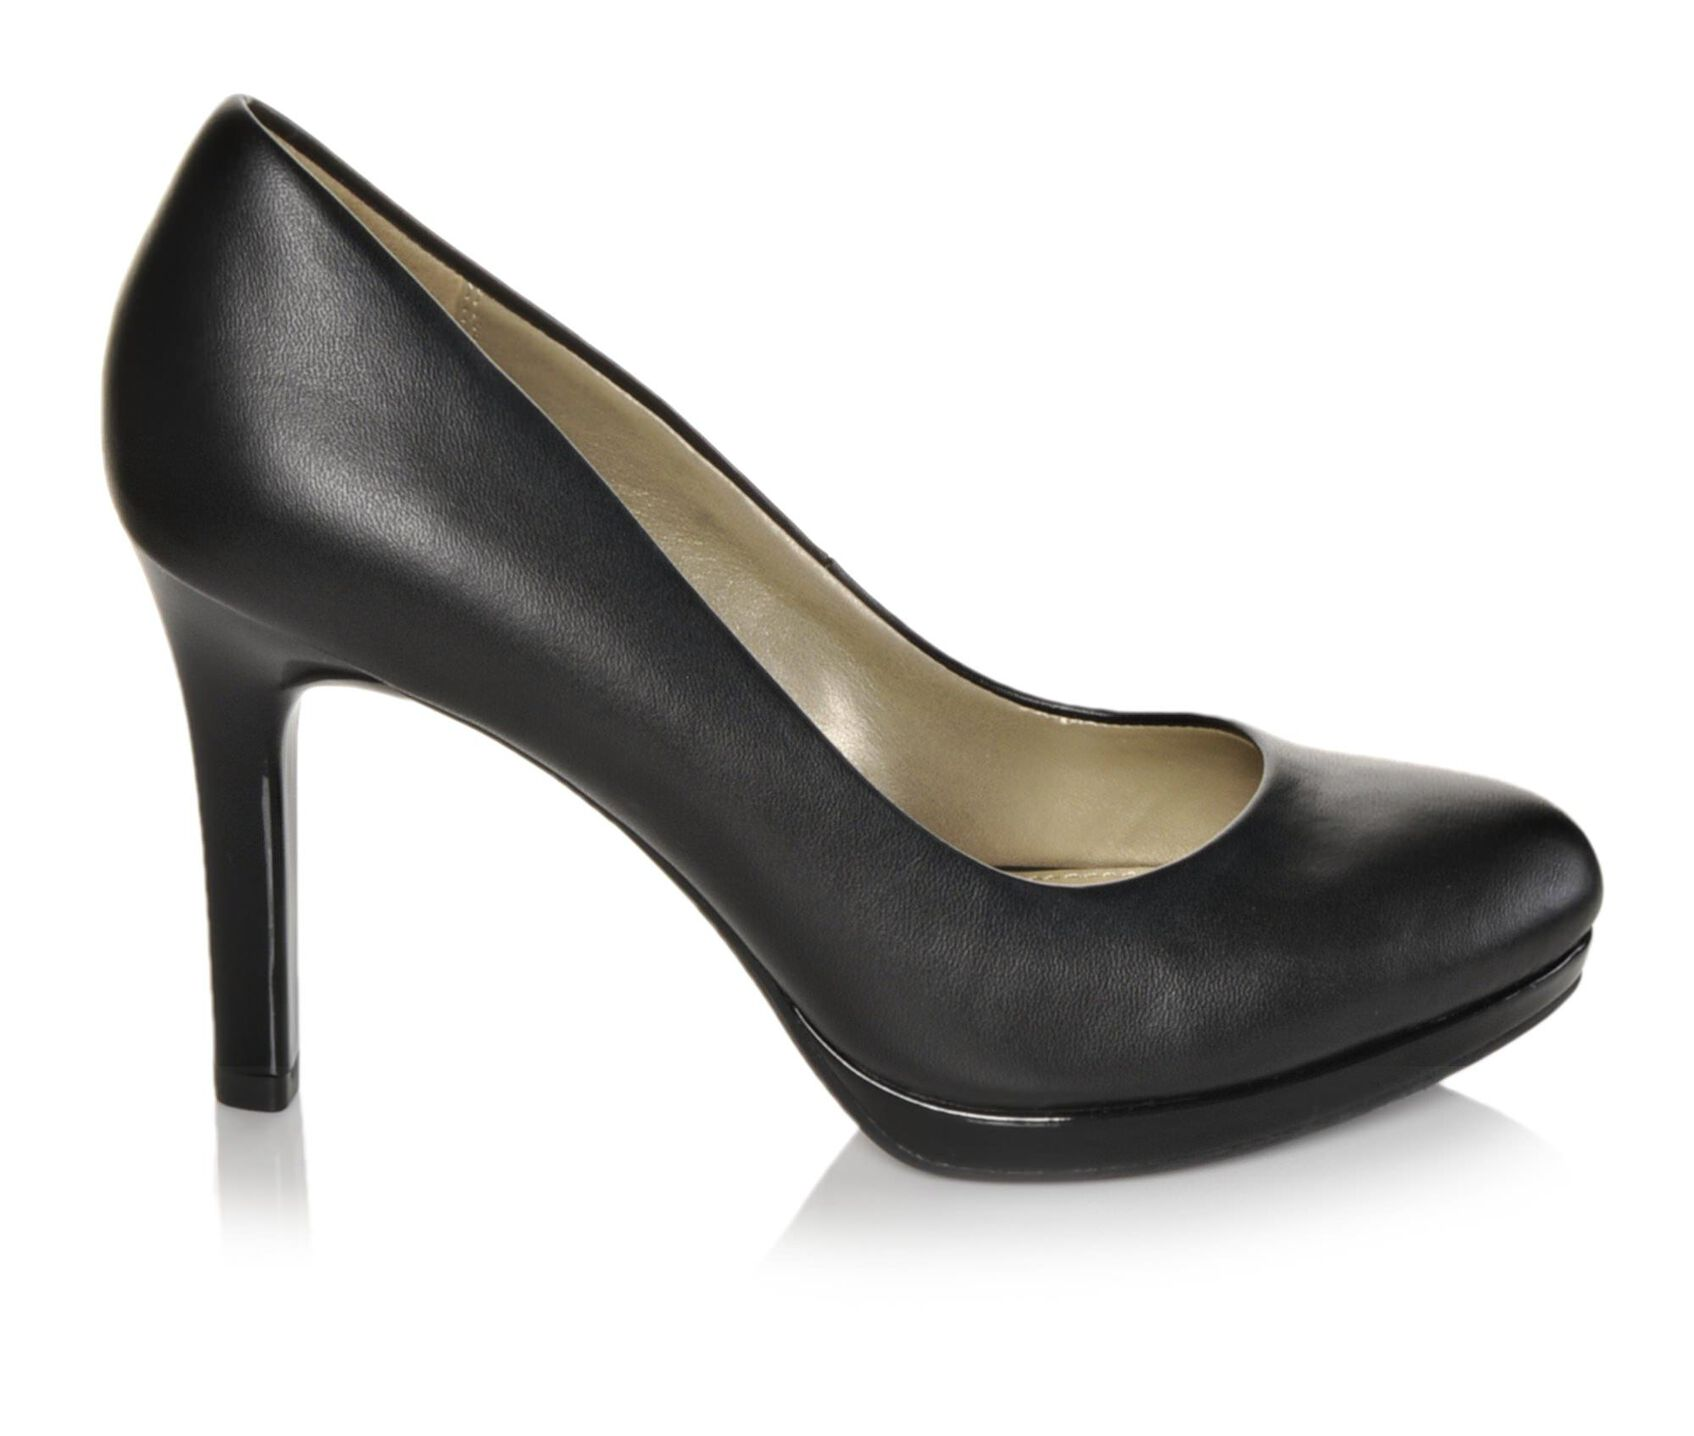 pin comfortable one most comforter pumps pinterest buy of shoespumpsshoes black things shoe my later